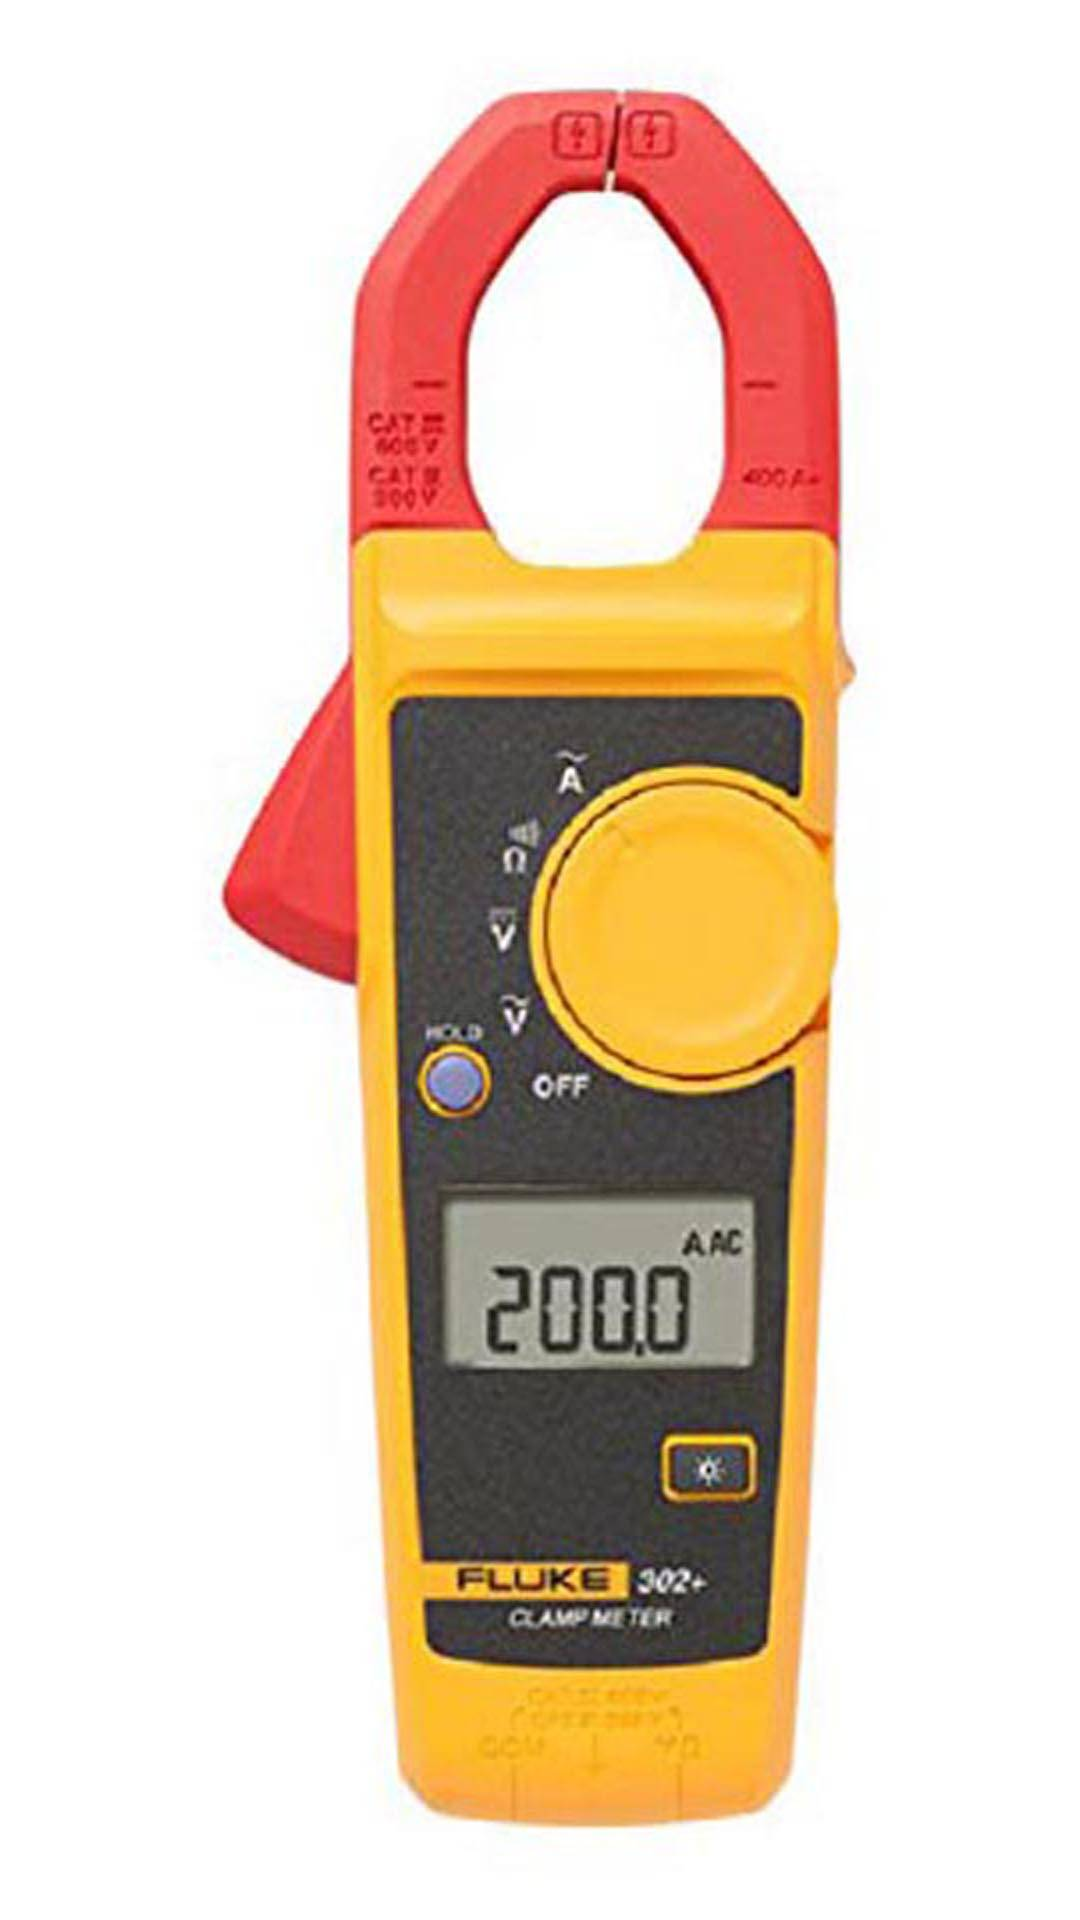 Fluke Digital Clamp Meter in Dubai, UAE - 303 from AABTools